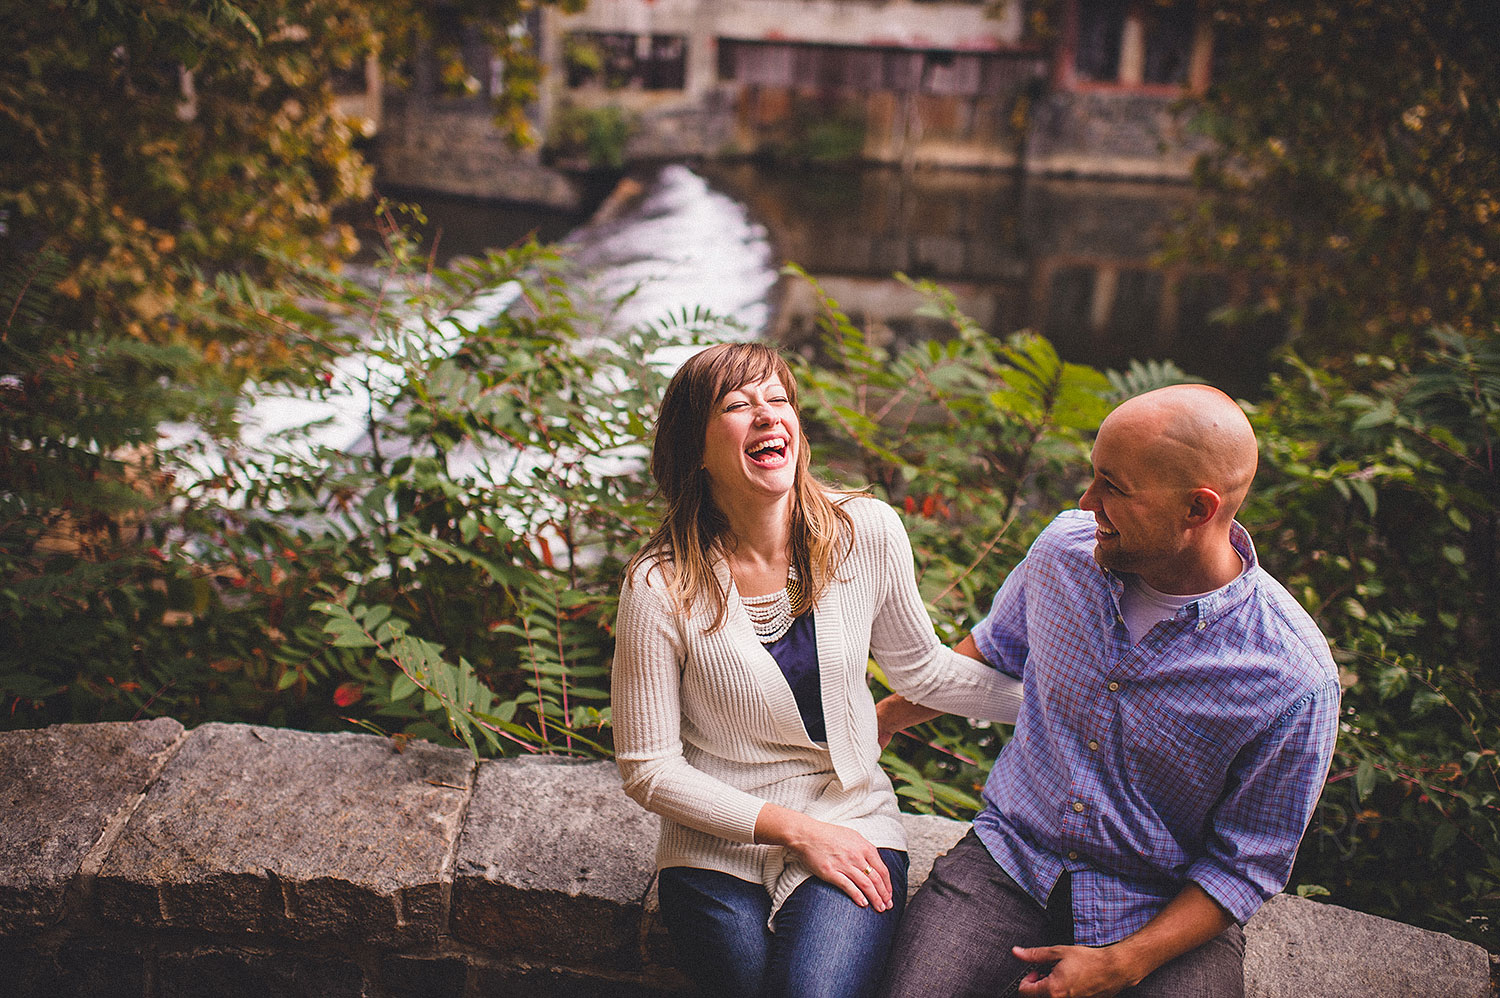 pat-robinson-photography-wilmington-engagement-session-13-2.jpg